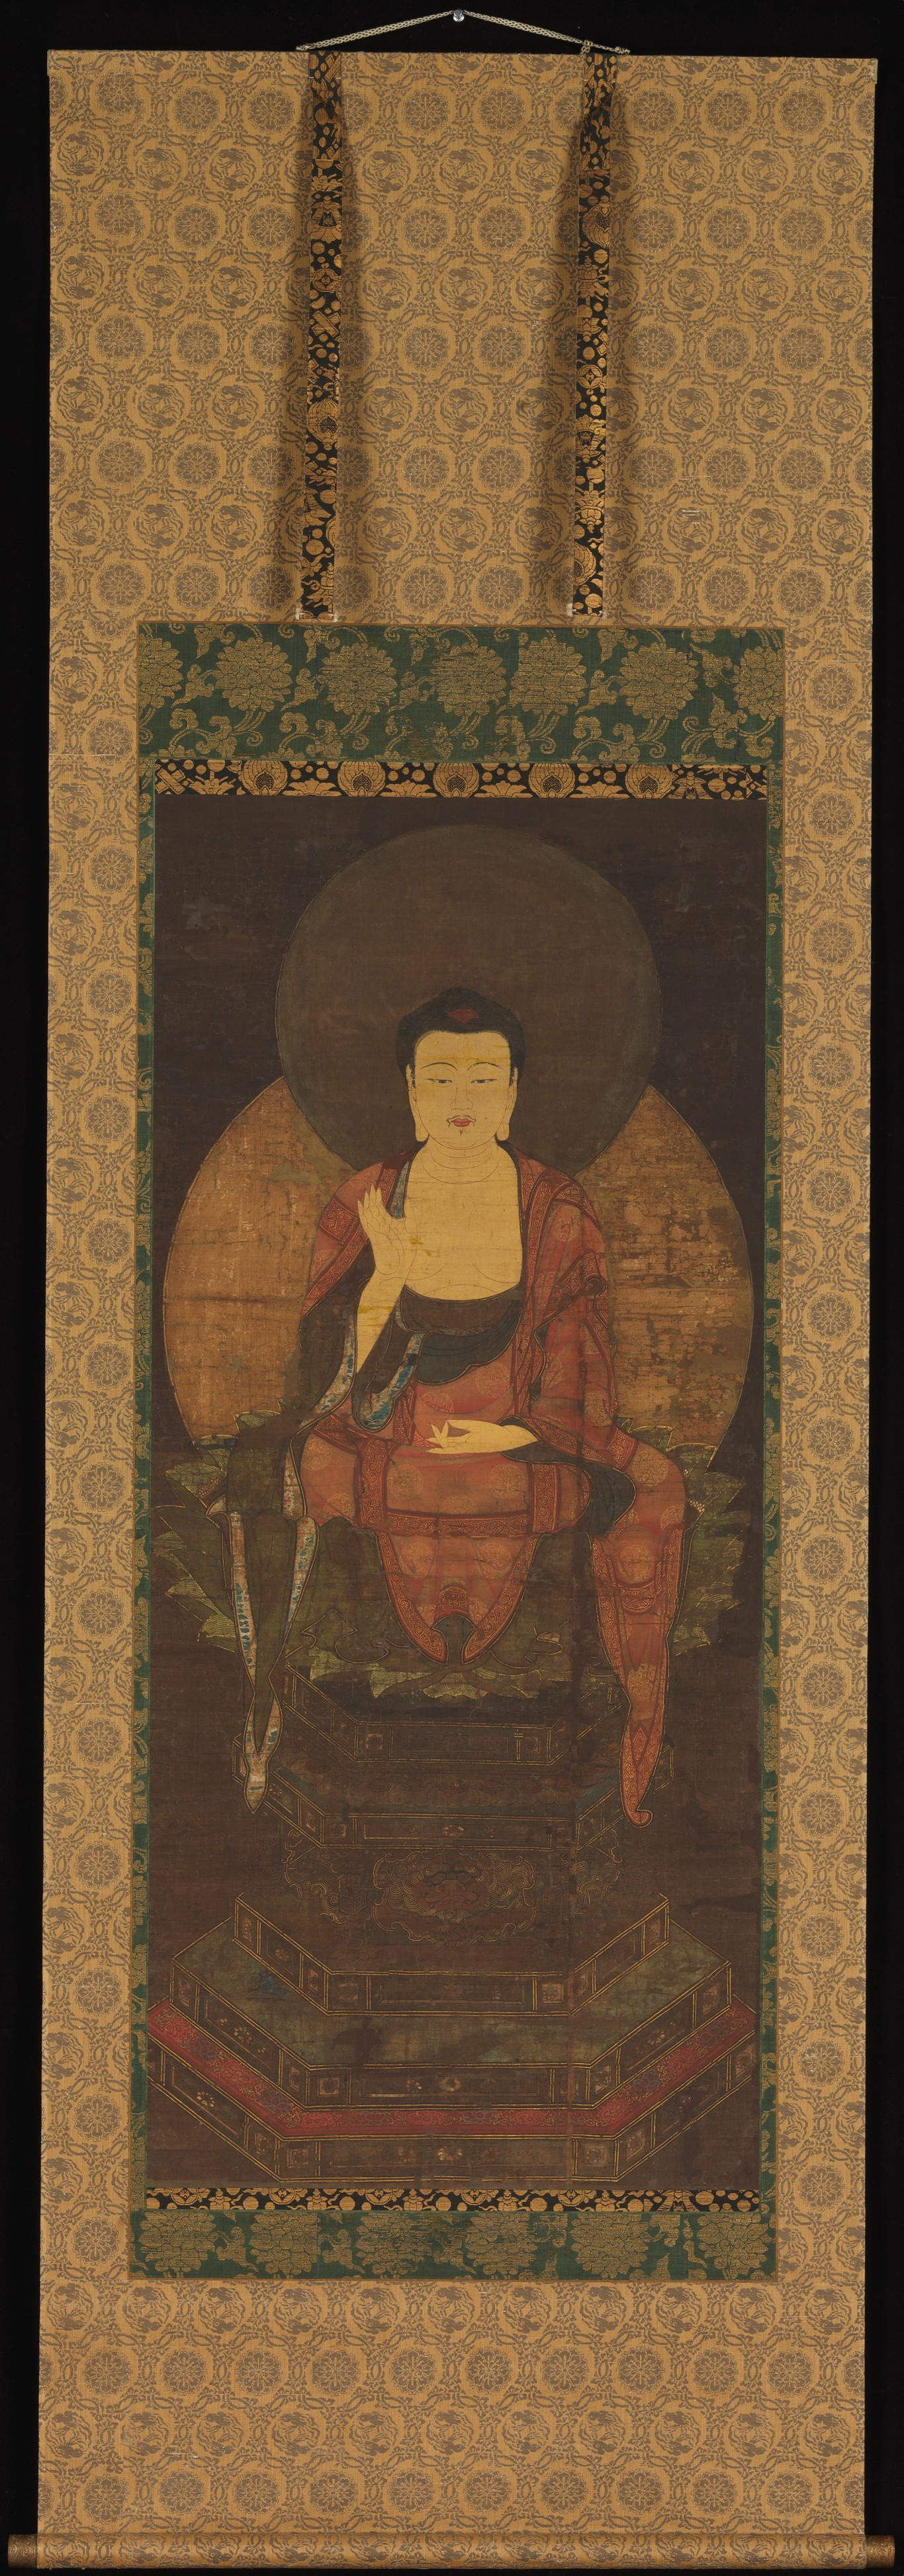 https://www.metmuseum.org/art/collection/search/45591?sortBy=Relevance&ft=Shakyamuni&offset=40&rpp=20&pos=55